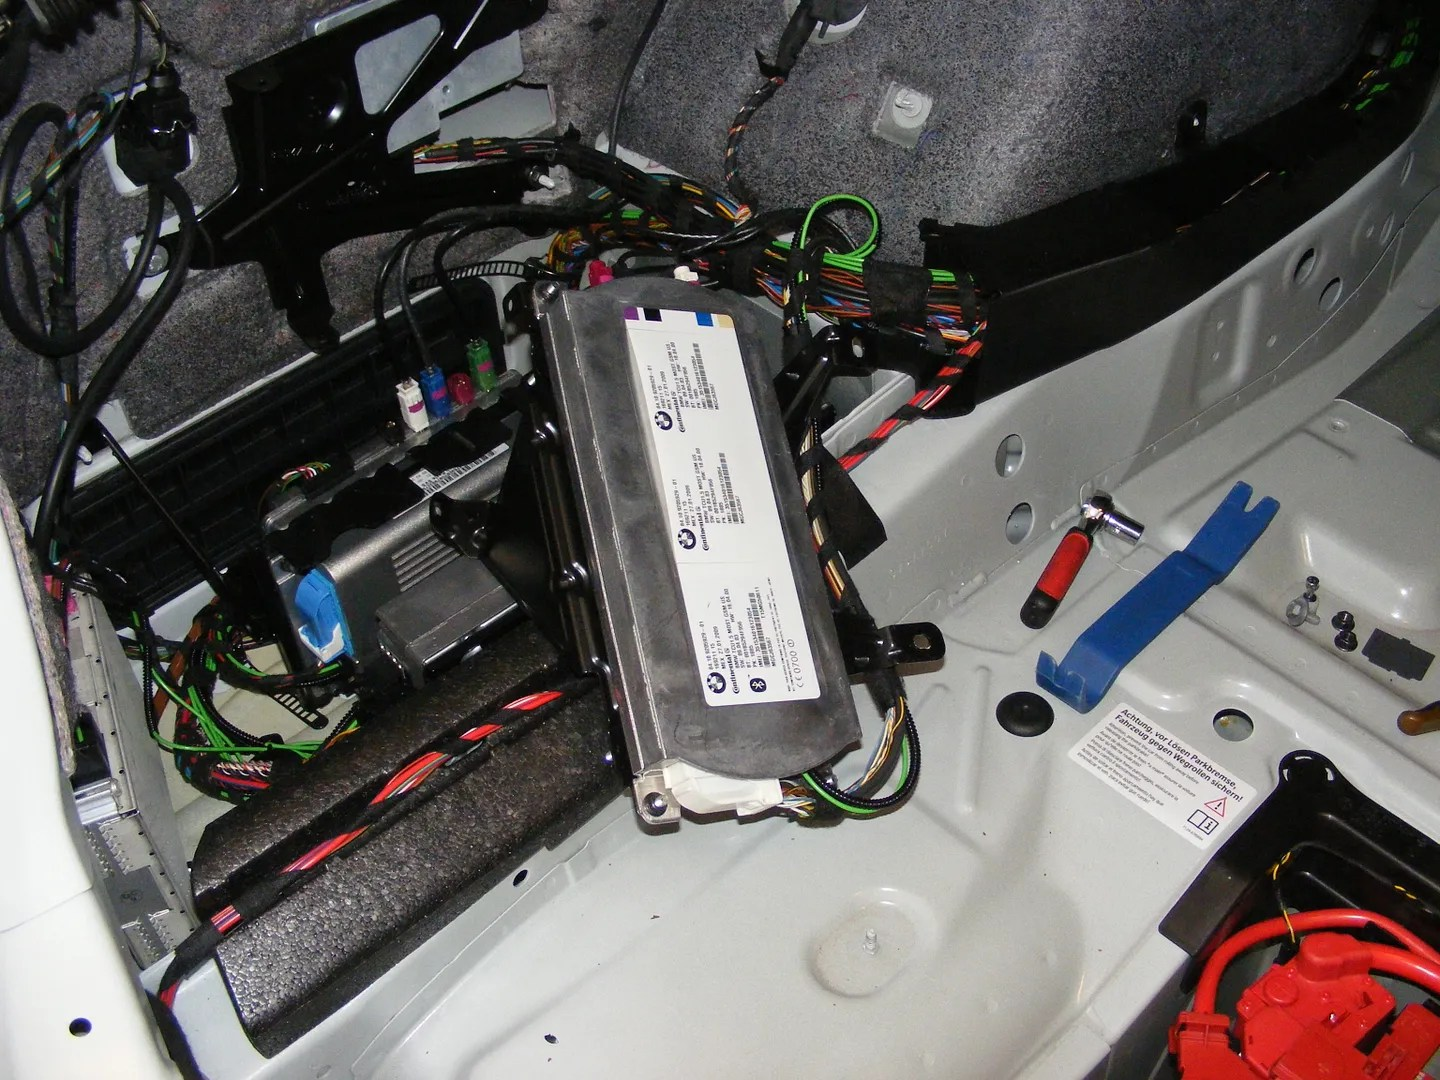 2002 bmw 325i parts diagram est smoke detector wiring notes on a 2009 f01 7-series apps retrofit - bimmerfest forums